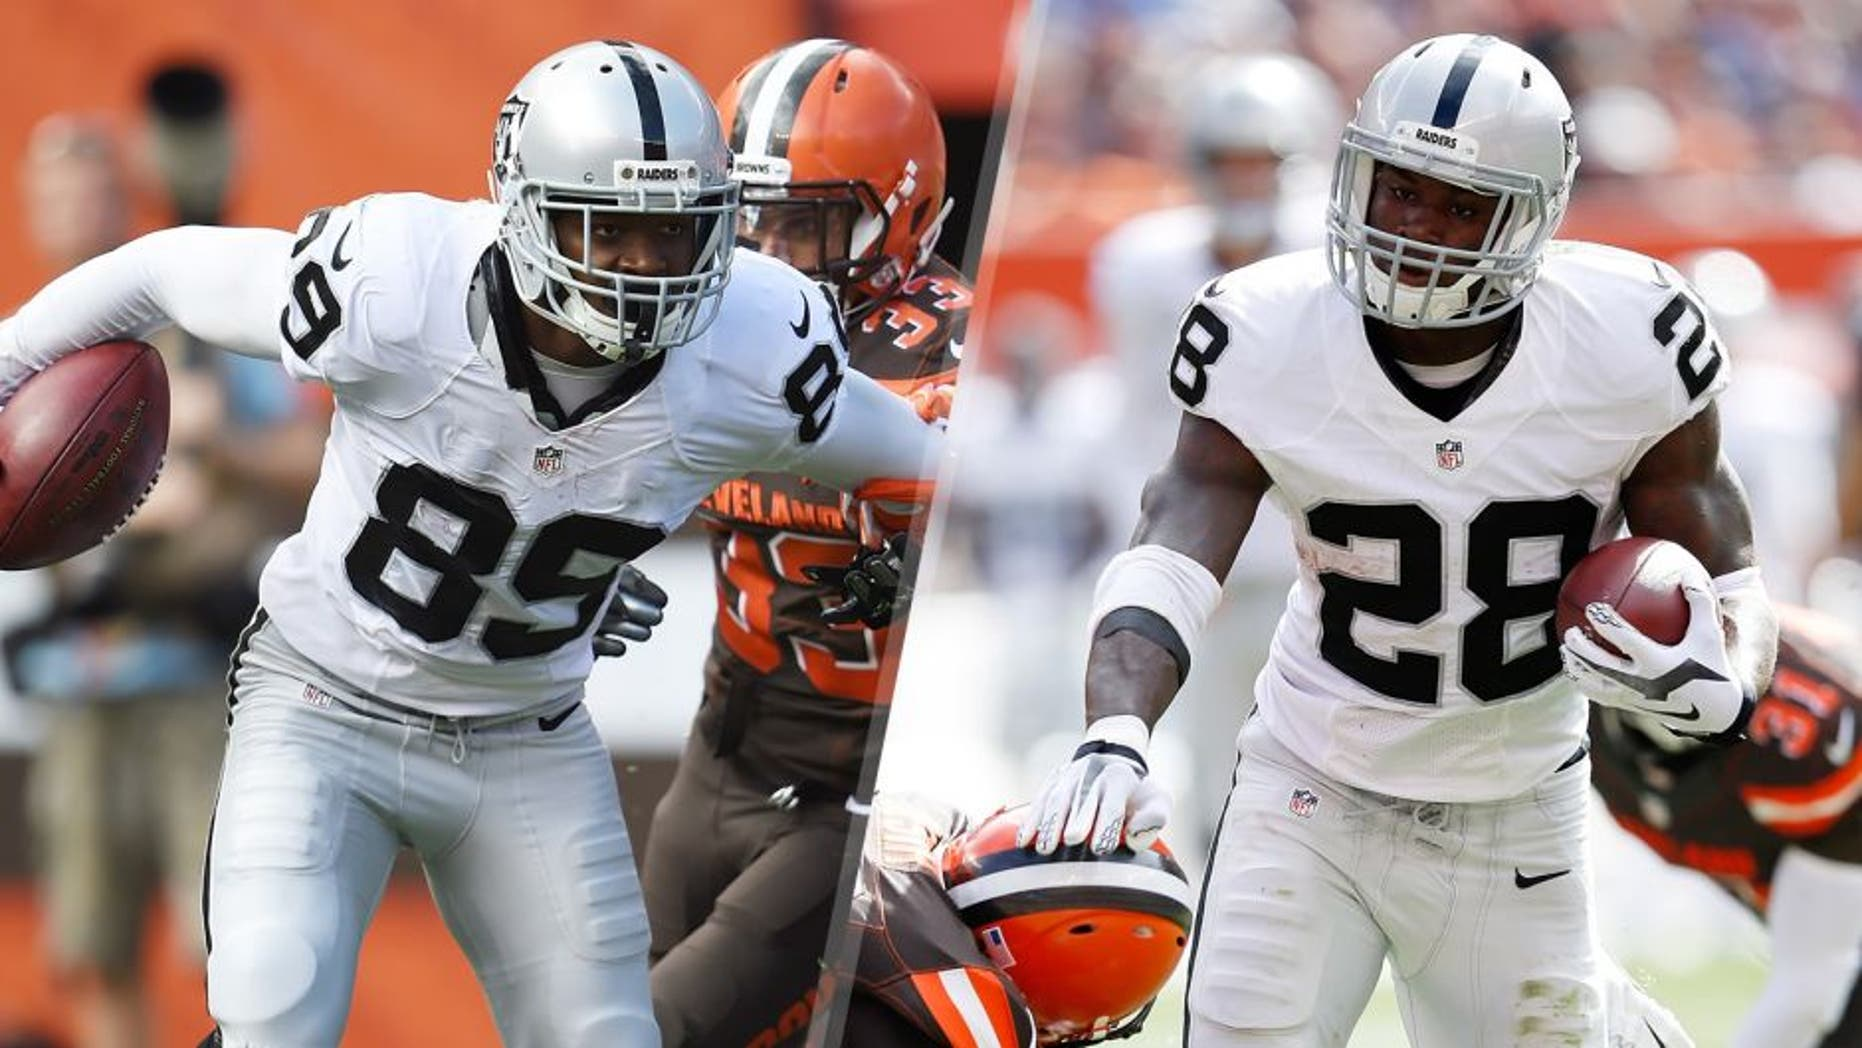 CLEVELAND, OH - SEPTEMBER 27: Amari Cooper #89 of the Oakland Raiders breaks a tackle by Chris Kirksey #58 of the Cleveland Browns during the third quarter at FirstEnergy Stadium on September 27, 2015 in Cleveland, Ohio. (Photo by Jason Miller/Getty Images) CLEVELAND, OH - SEPTEMBER 27: Latavius Murray #28 of the Oakland Raiders breaks a tackle by Pierre Desir #26 of the Cleveland Browns during the third quarter at FirstEnergy Stadium on September 27, 2015 in Cleveland, Ohio. (Photo by Joe Robbins/Getty Images)